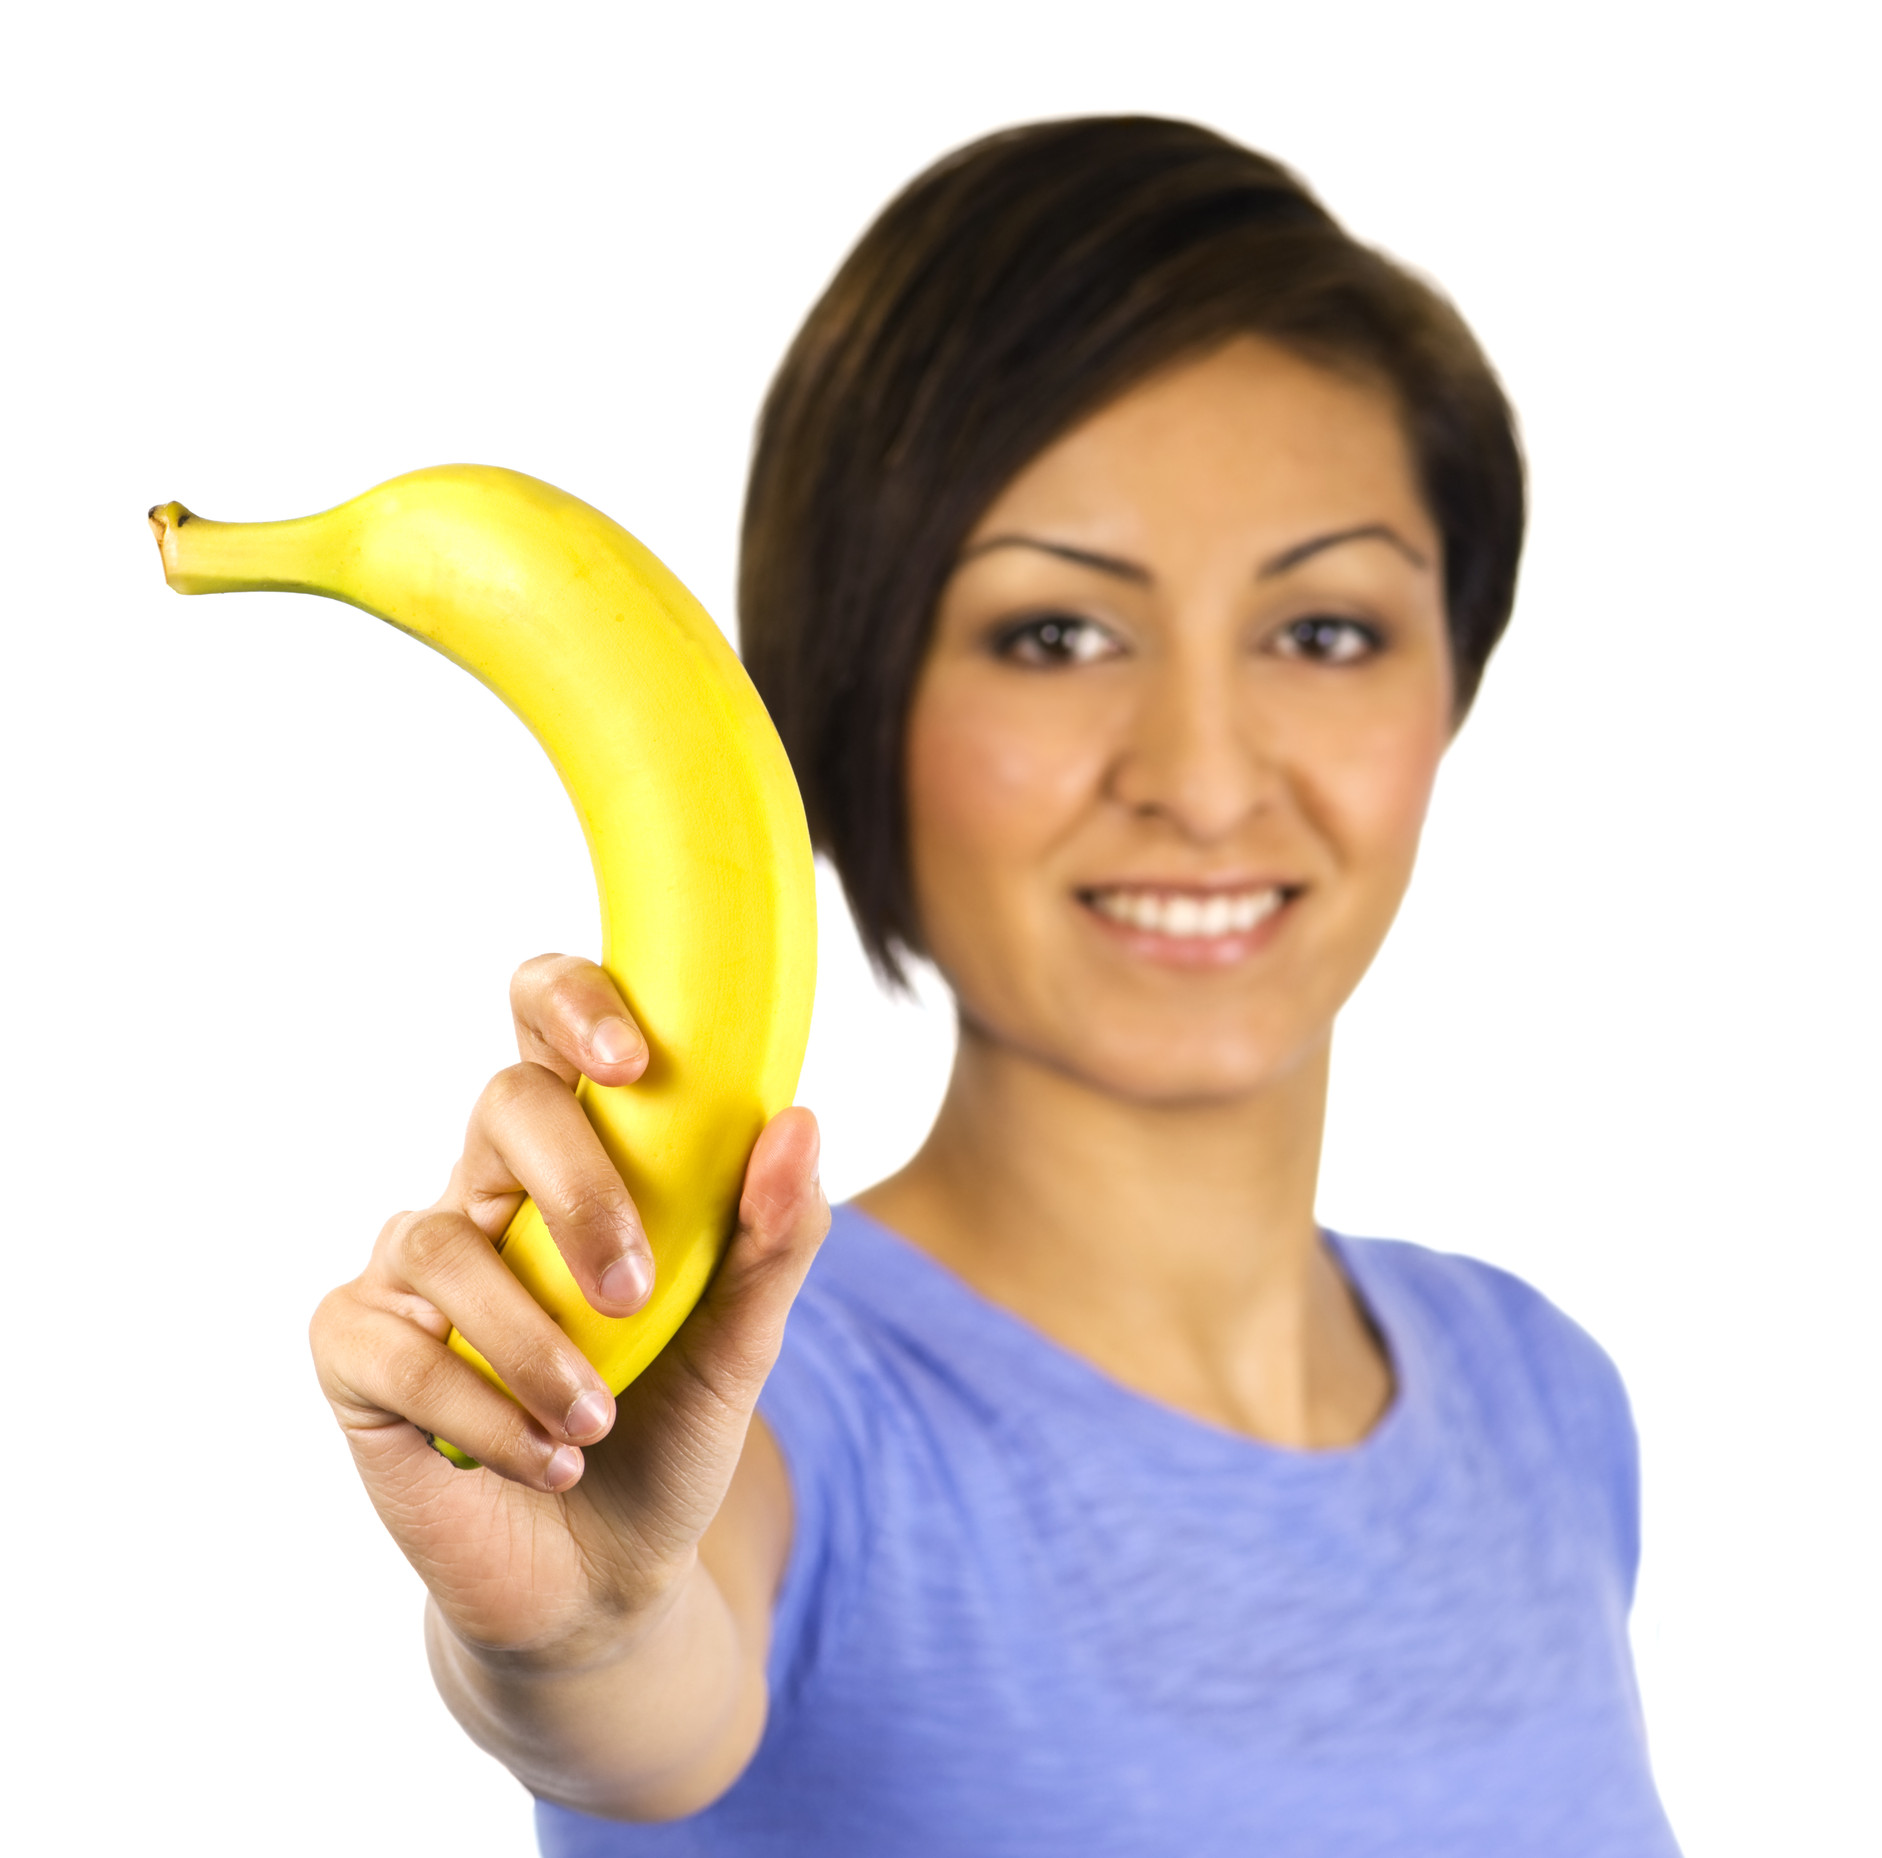 Woman Fruit Bananan